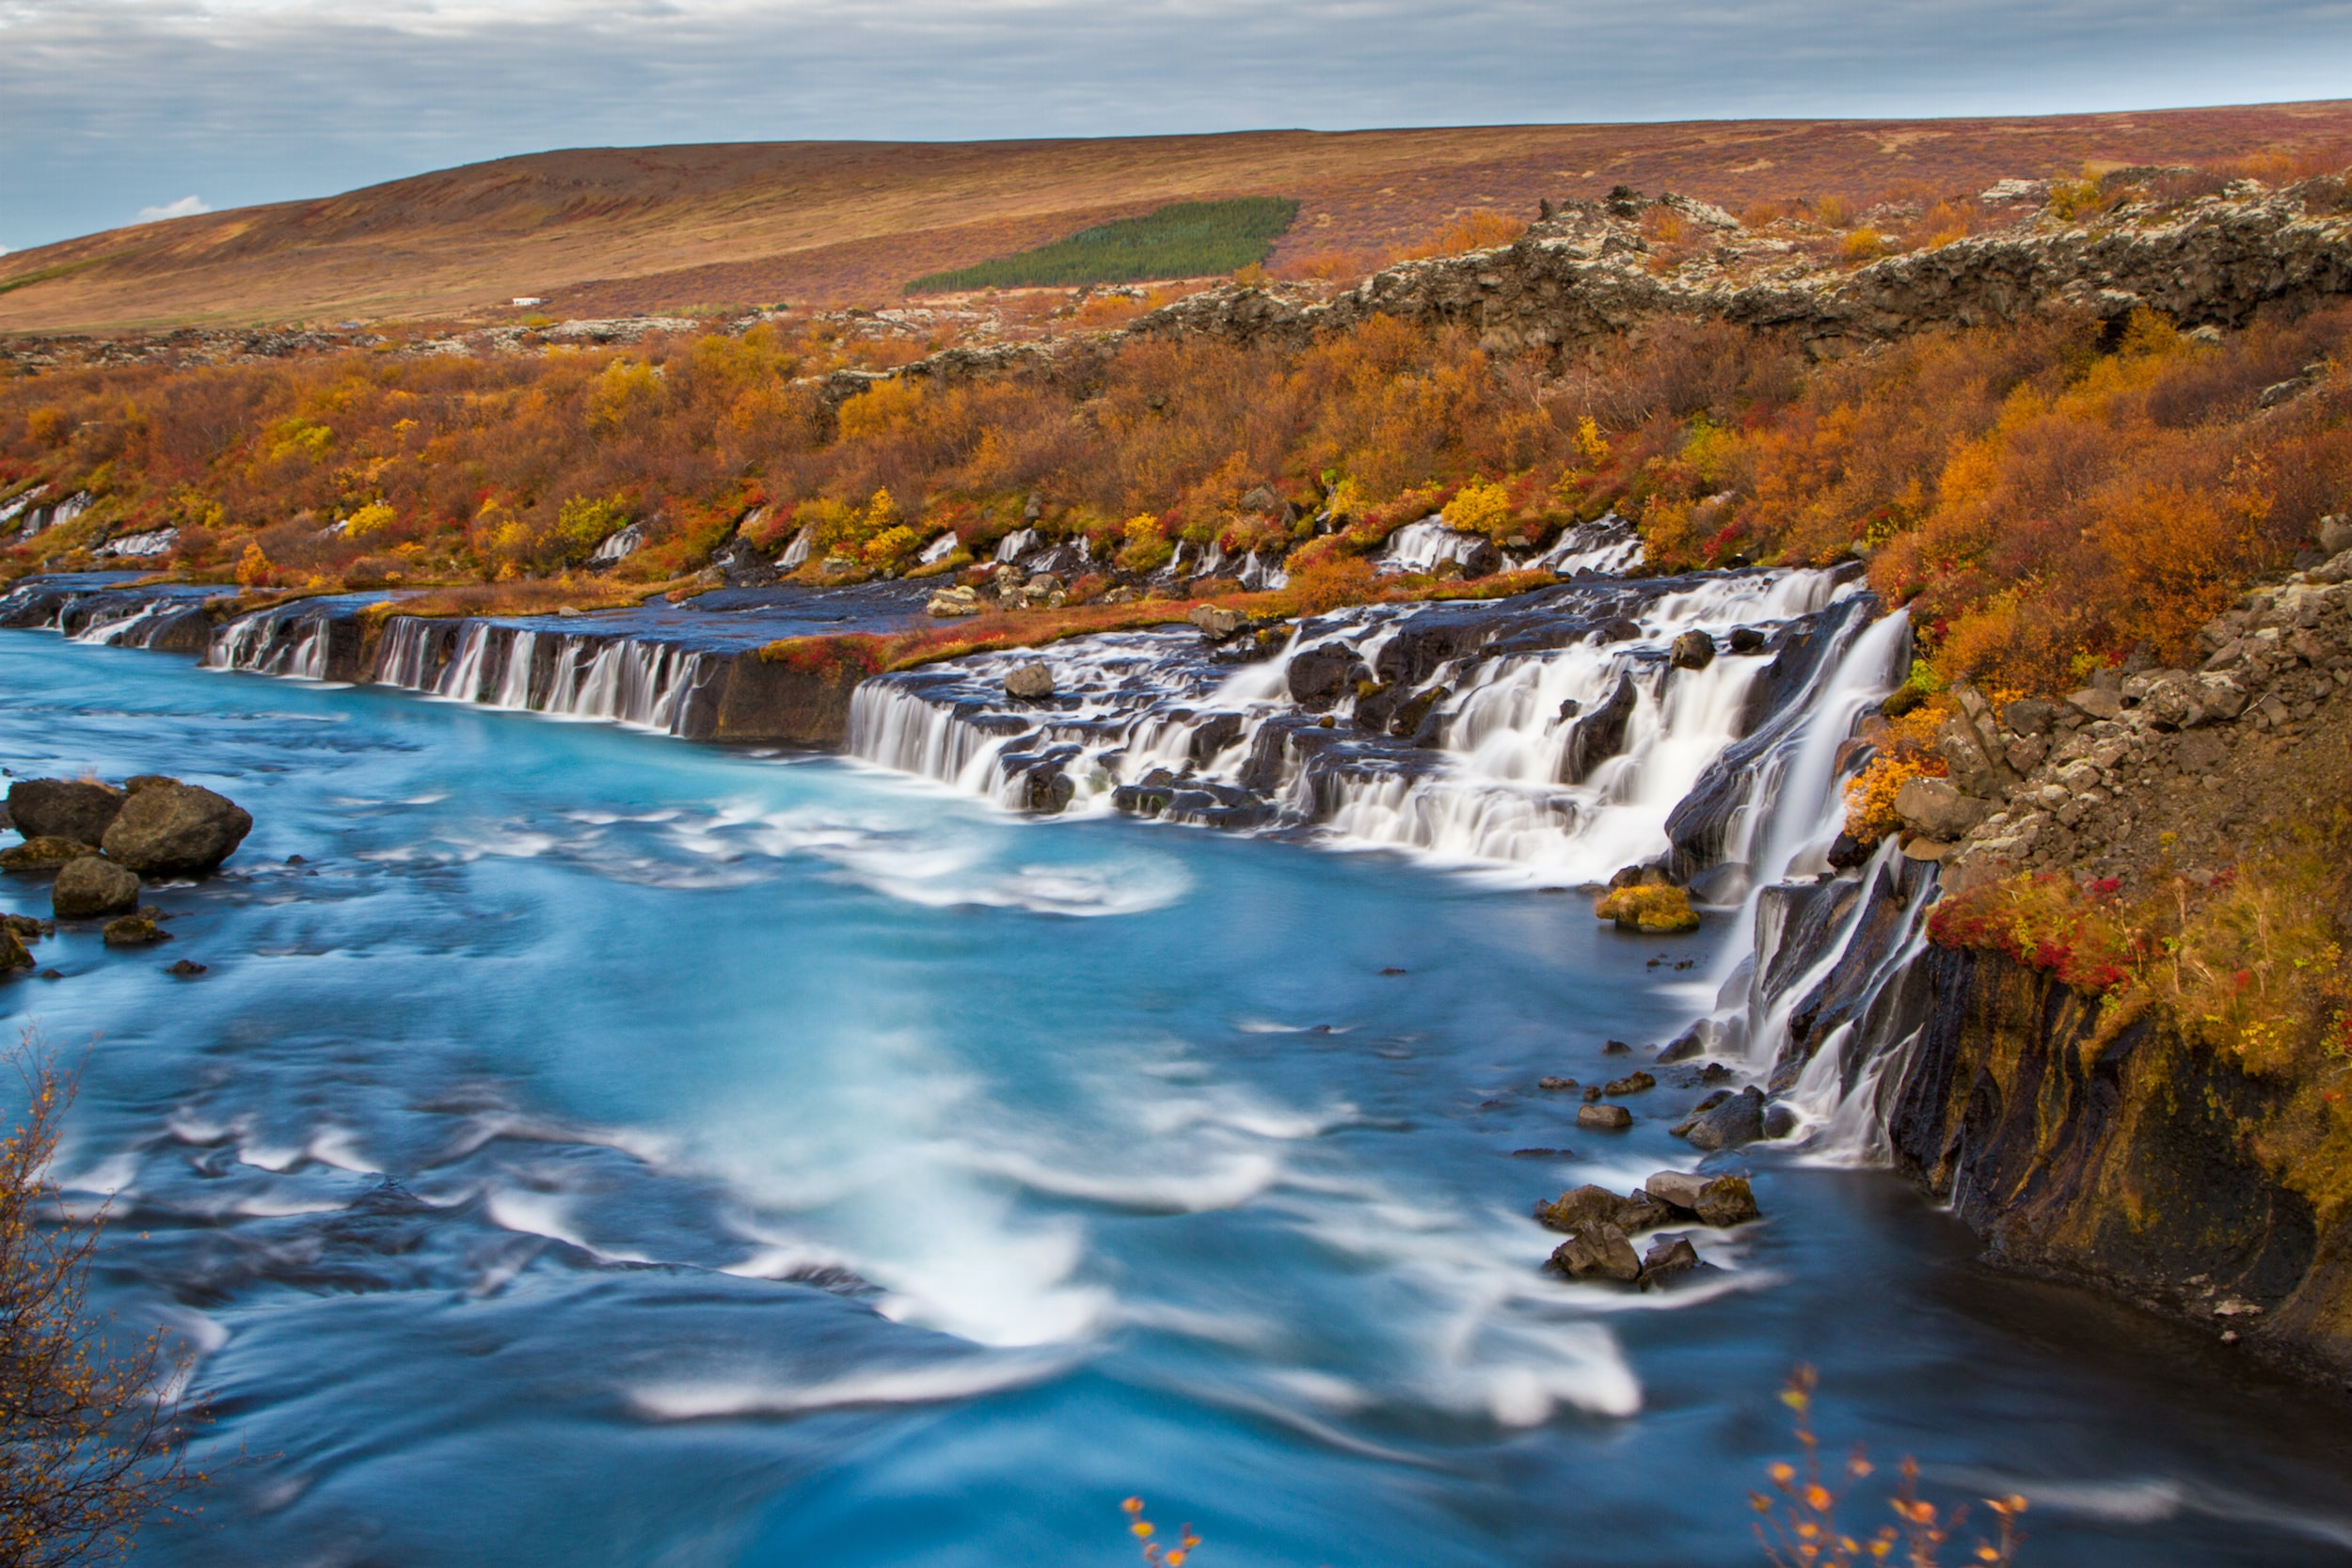 HDR photo of whitewater waterfalls from a hilly rocky edge beside a forest of autumn trees cascading down a clear and fast moving river